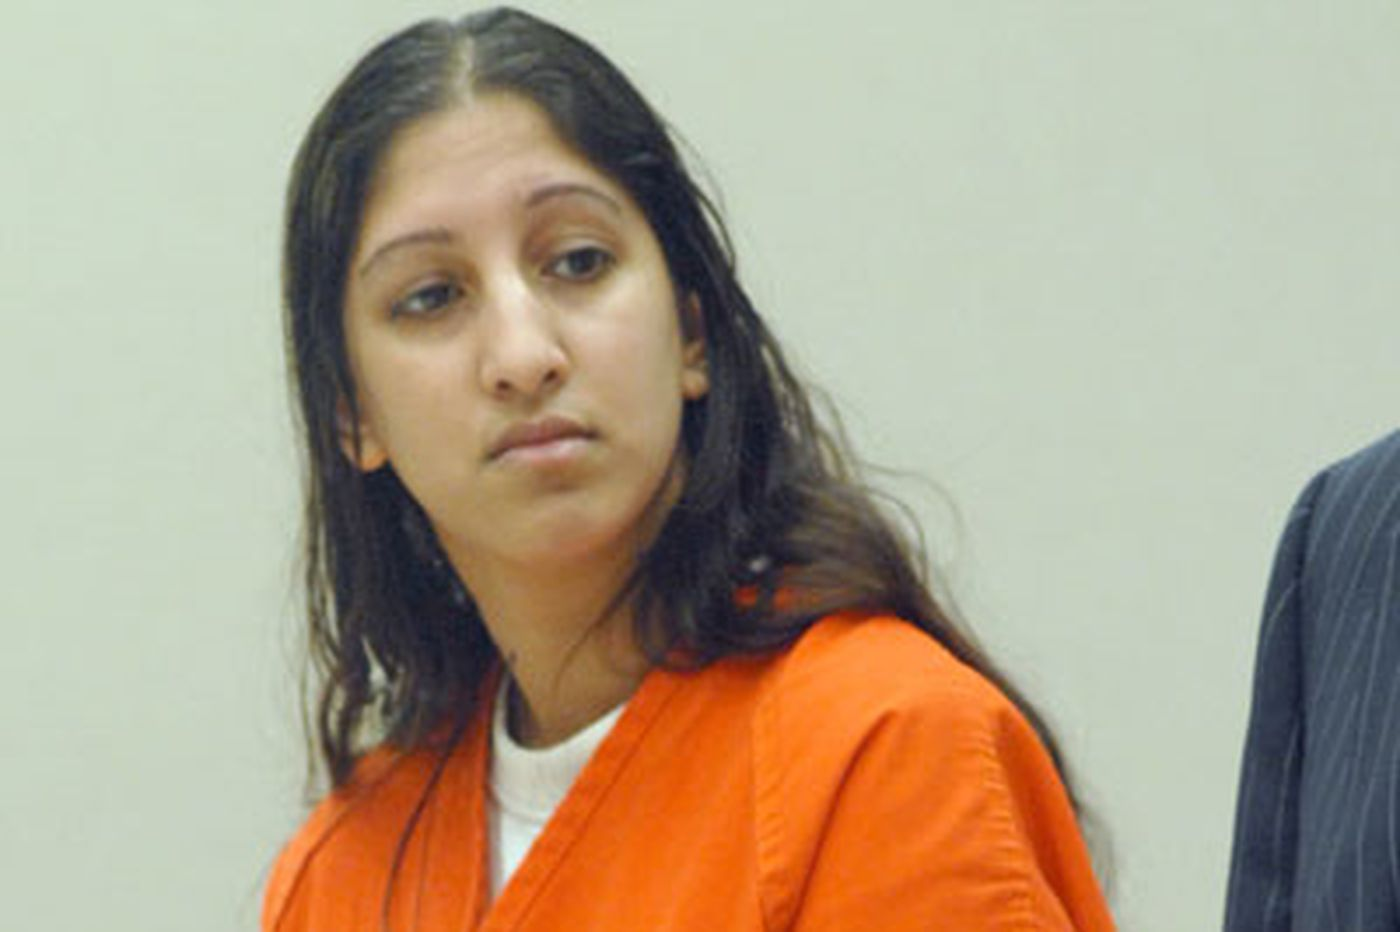 Lawyer sees 'deal with the devil' at Atlantic City murder trial